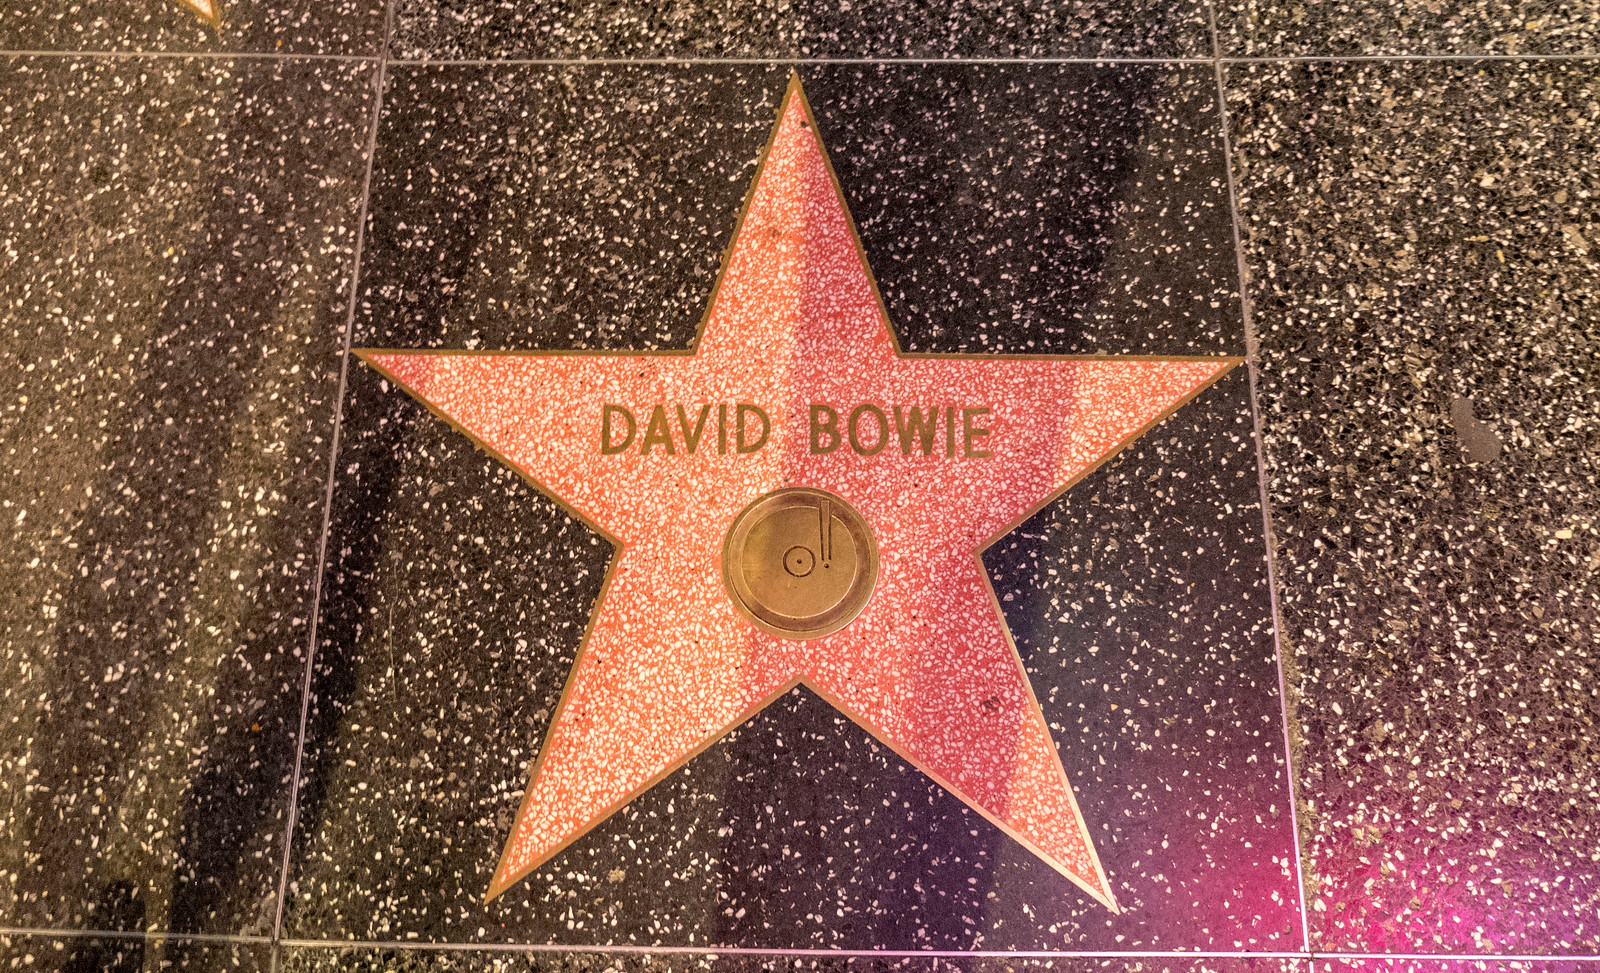 David Bowie Hollywood Walk of Fame